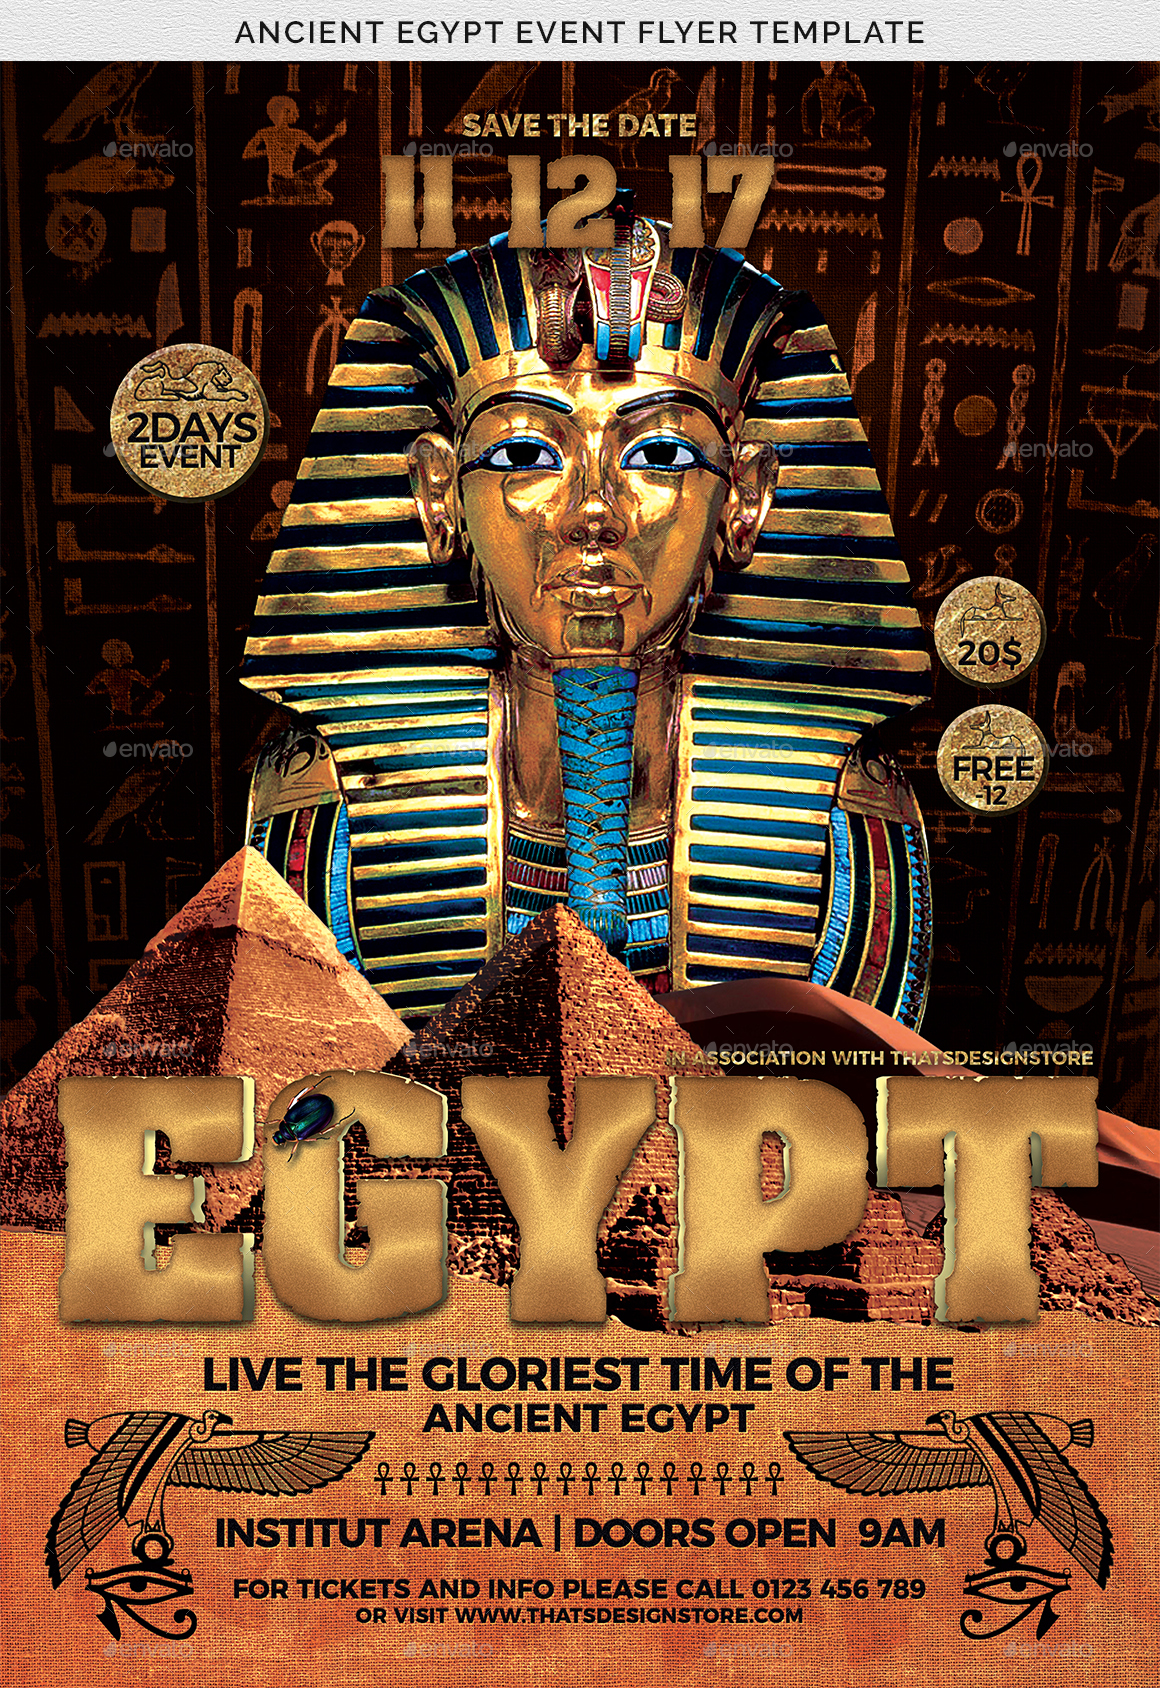 ancient egypt event flyer template by lou606